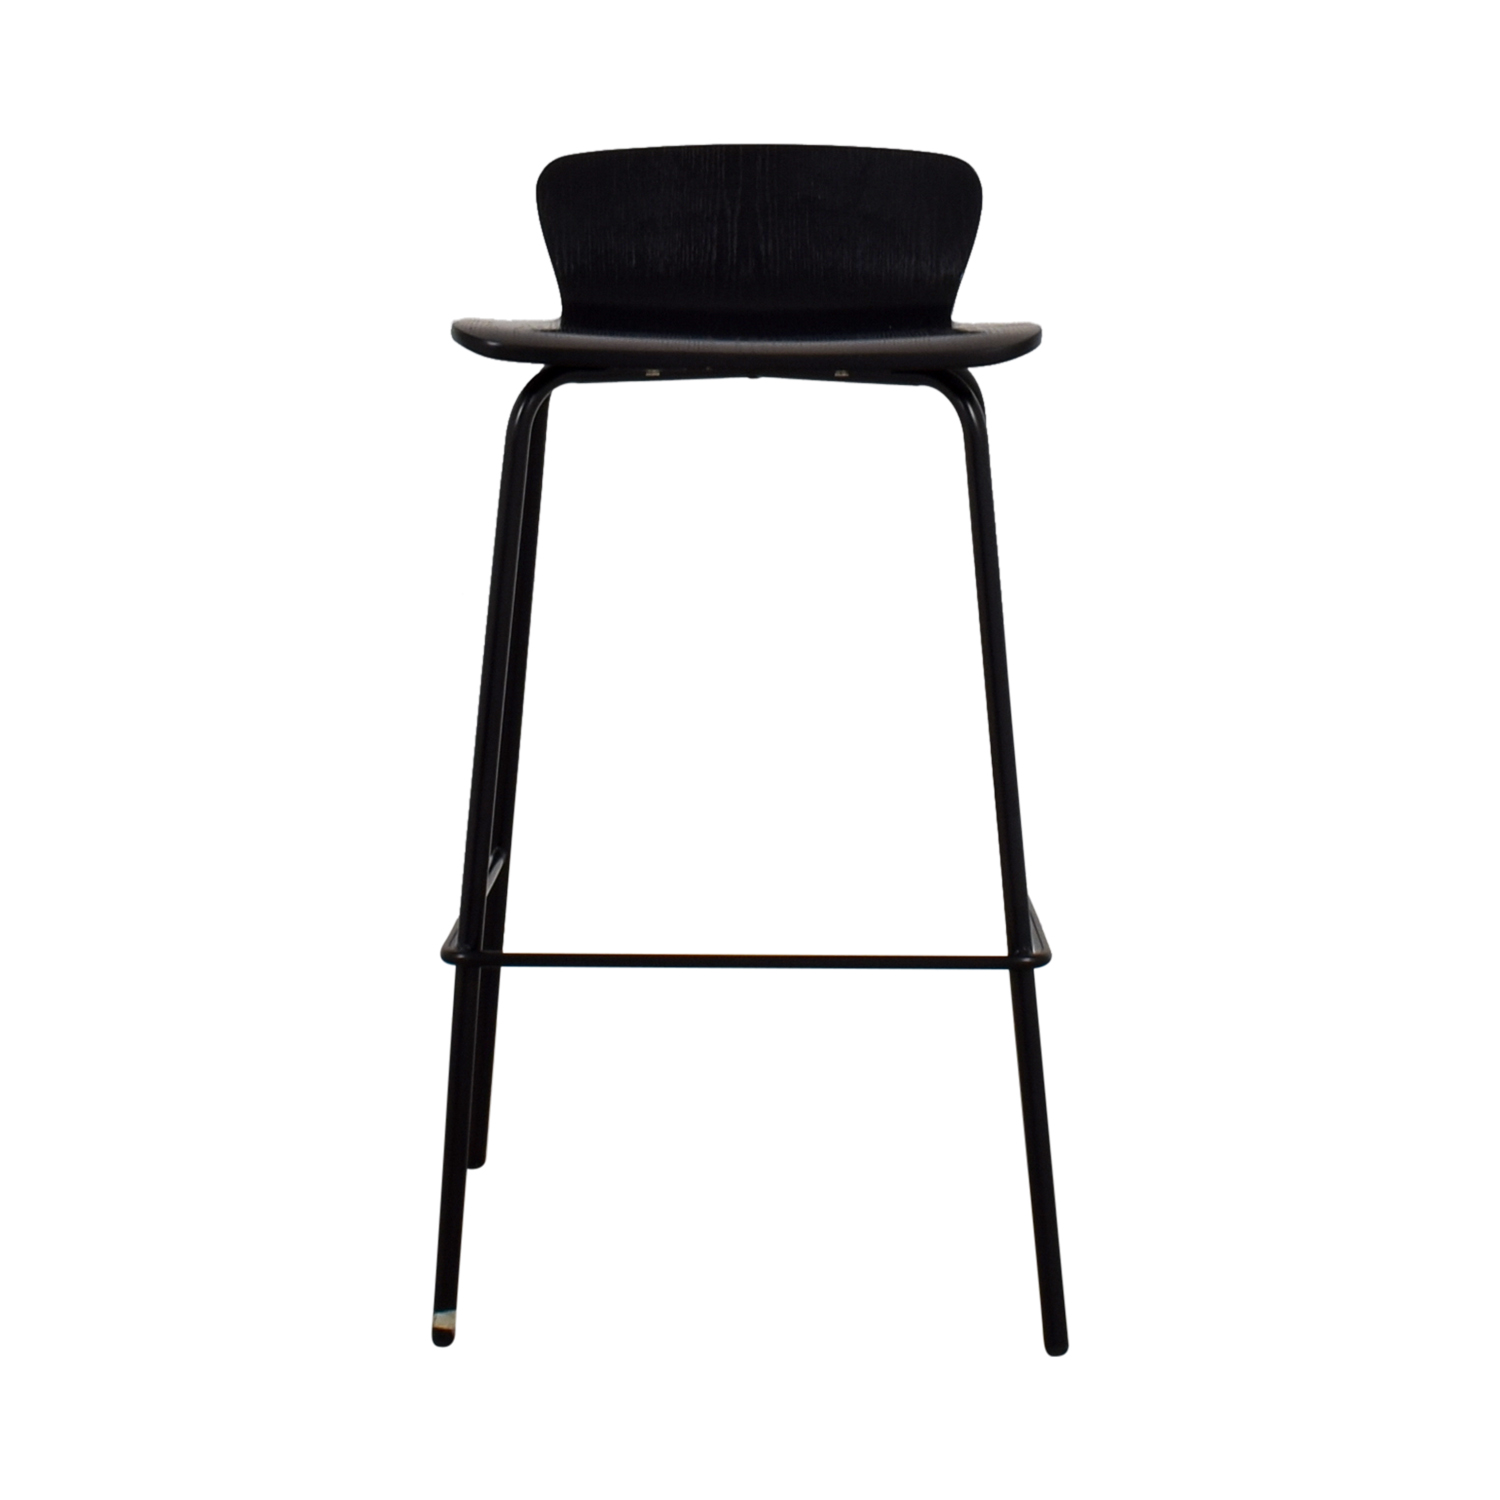 shop Crate & Barrel Crate & Barrel Black Barstool online